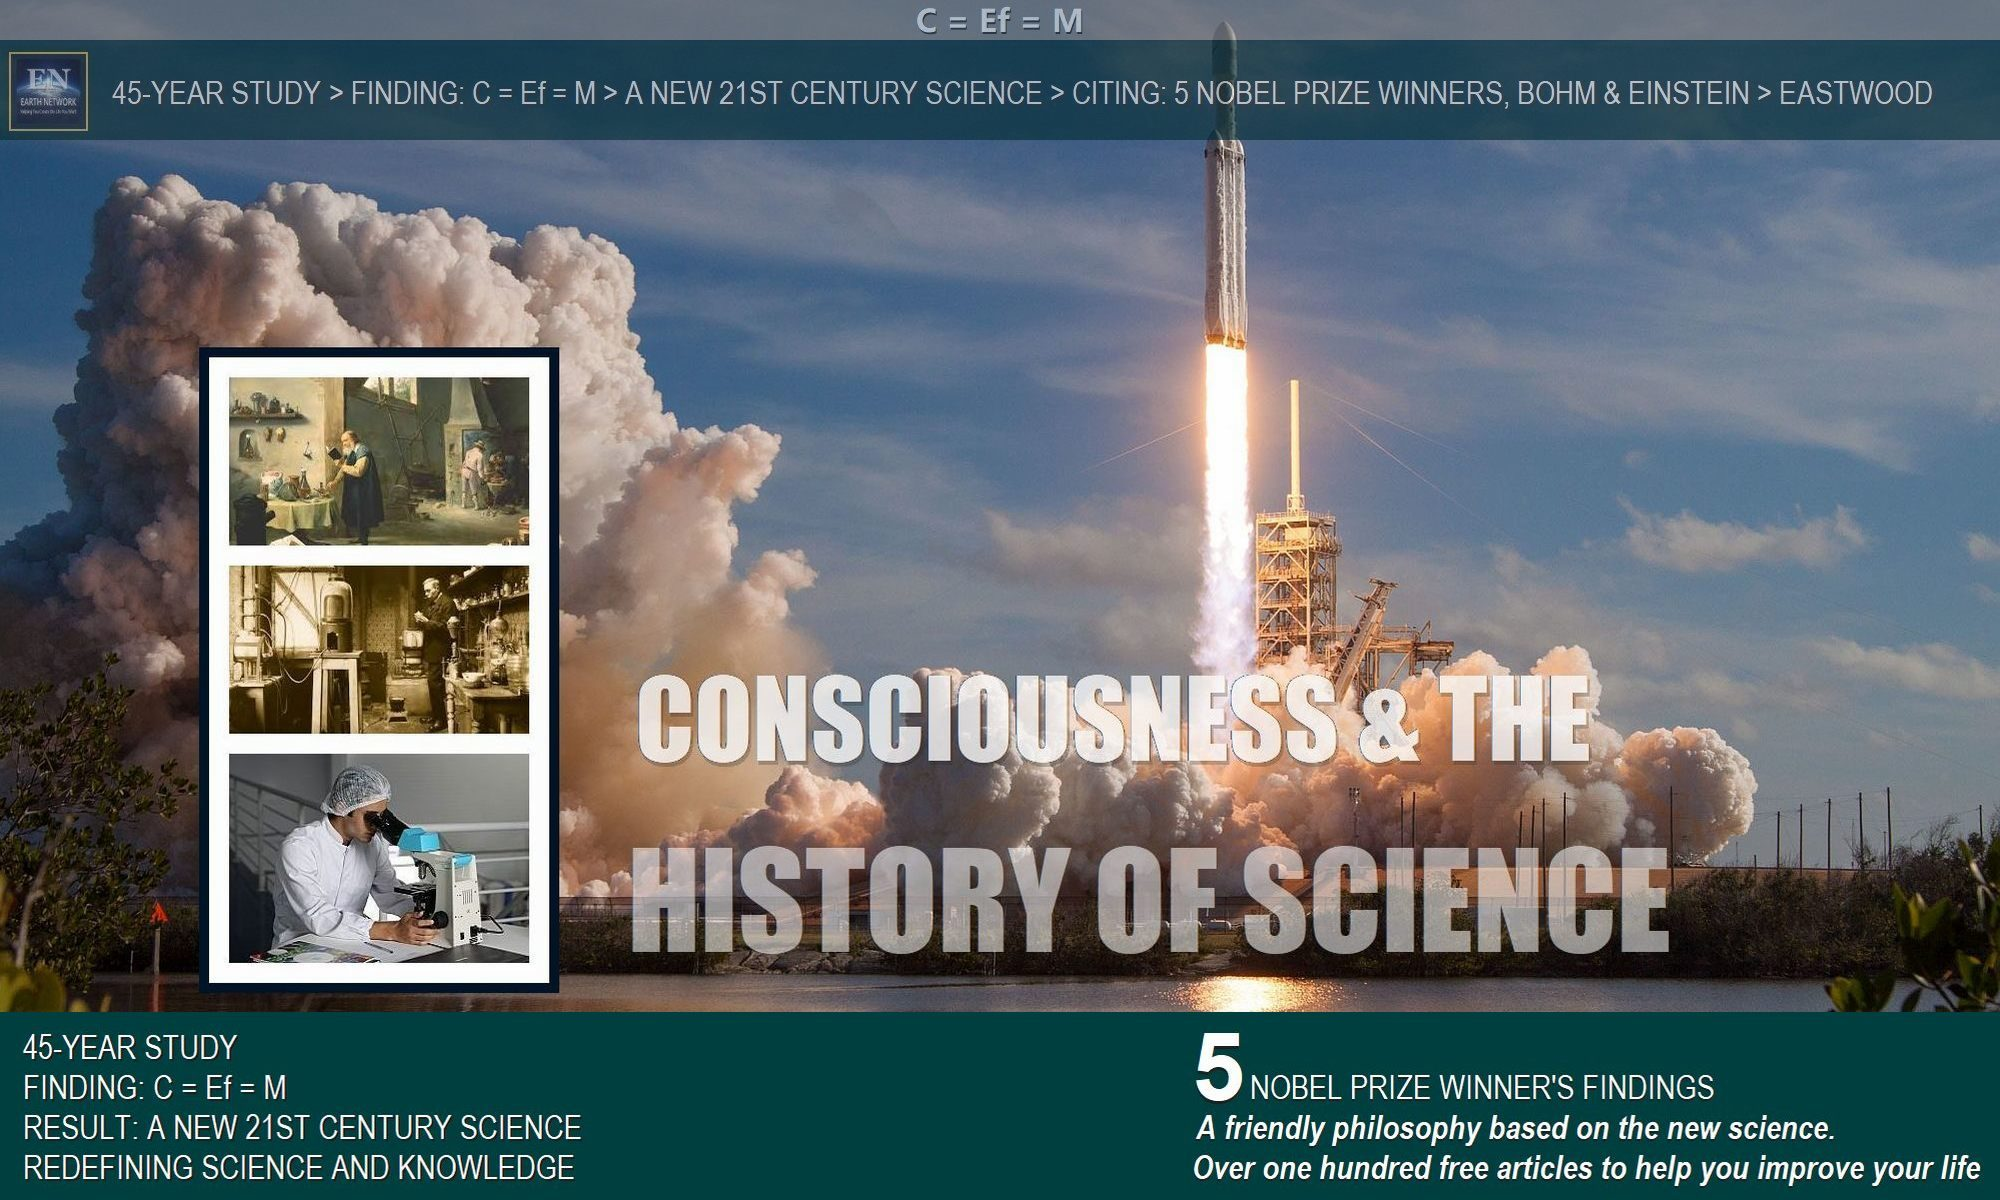 science-consciousness-studies-history-of-soul-fact-fiction-truth-myth-why-scientists-are-bias